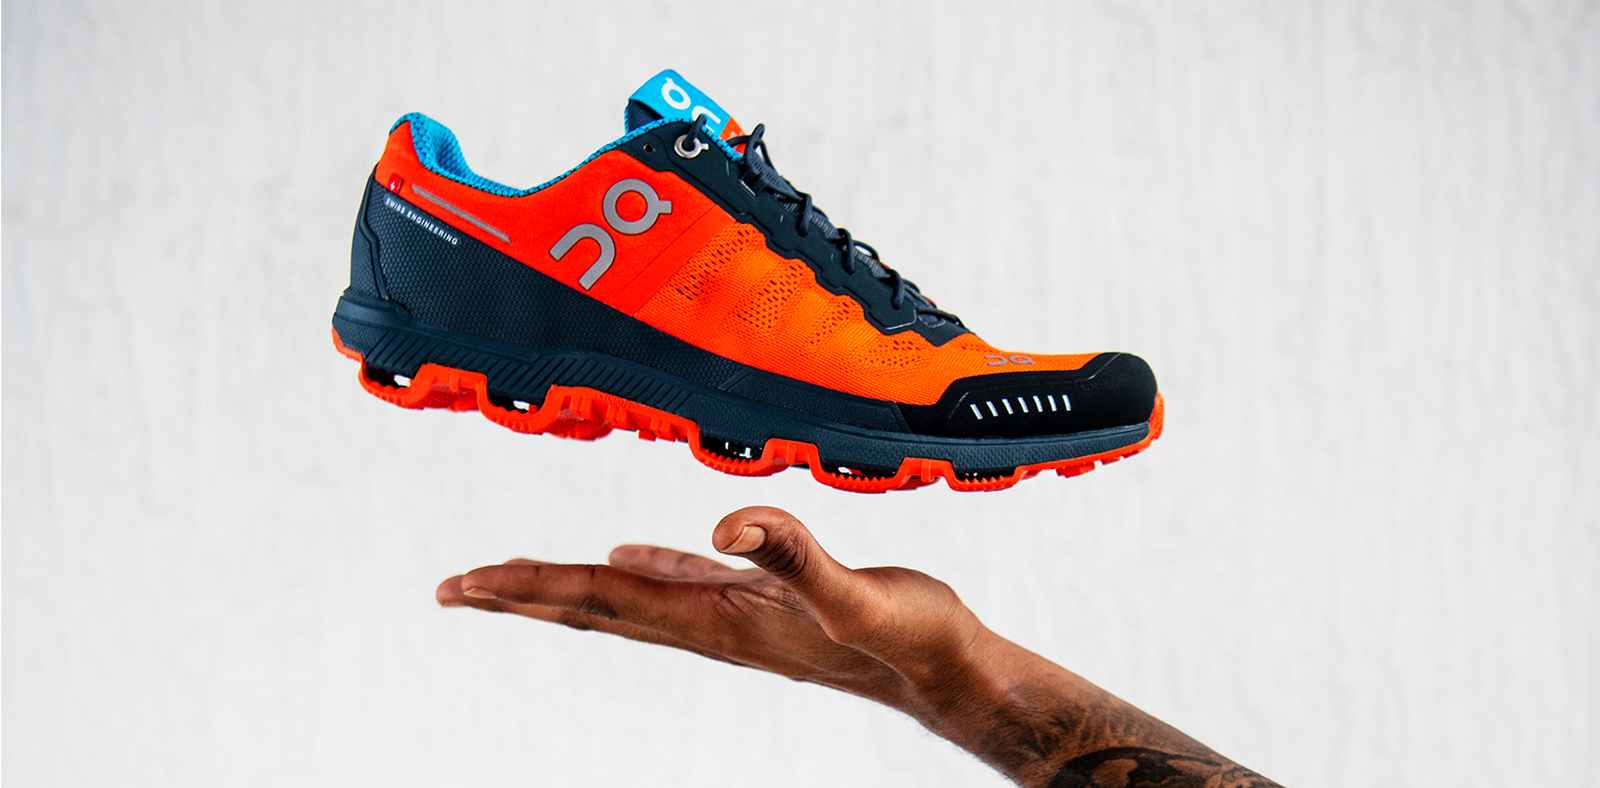 An orange, black, and blue On shoe floats above a hand.